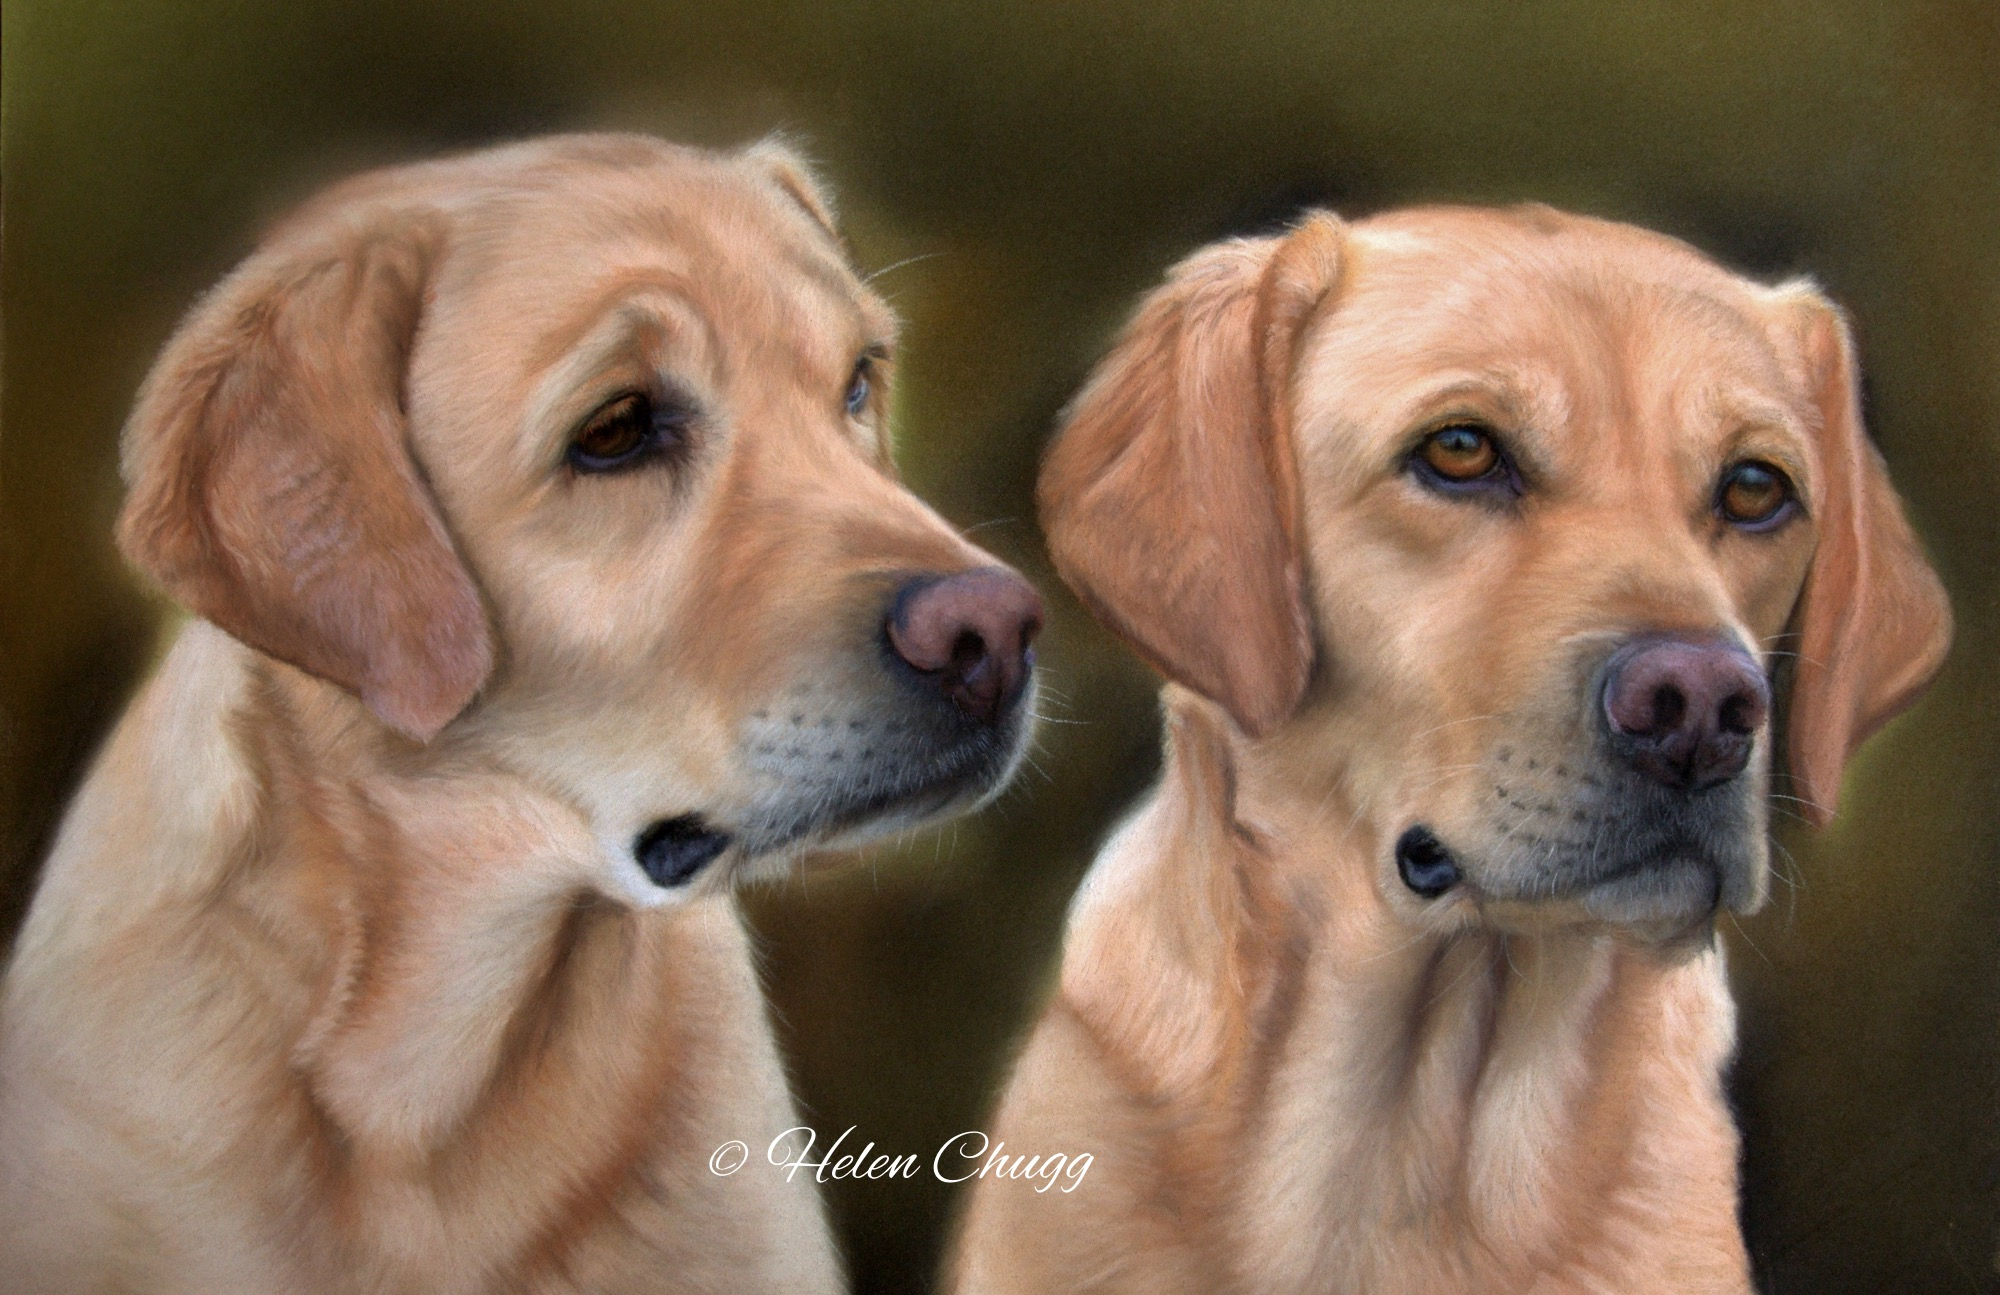 two yellow labradors against a dark background